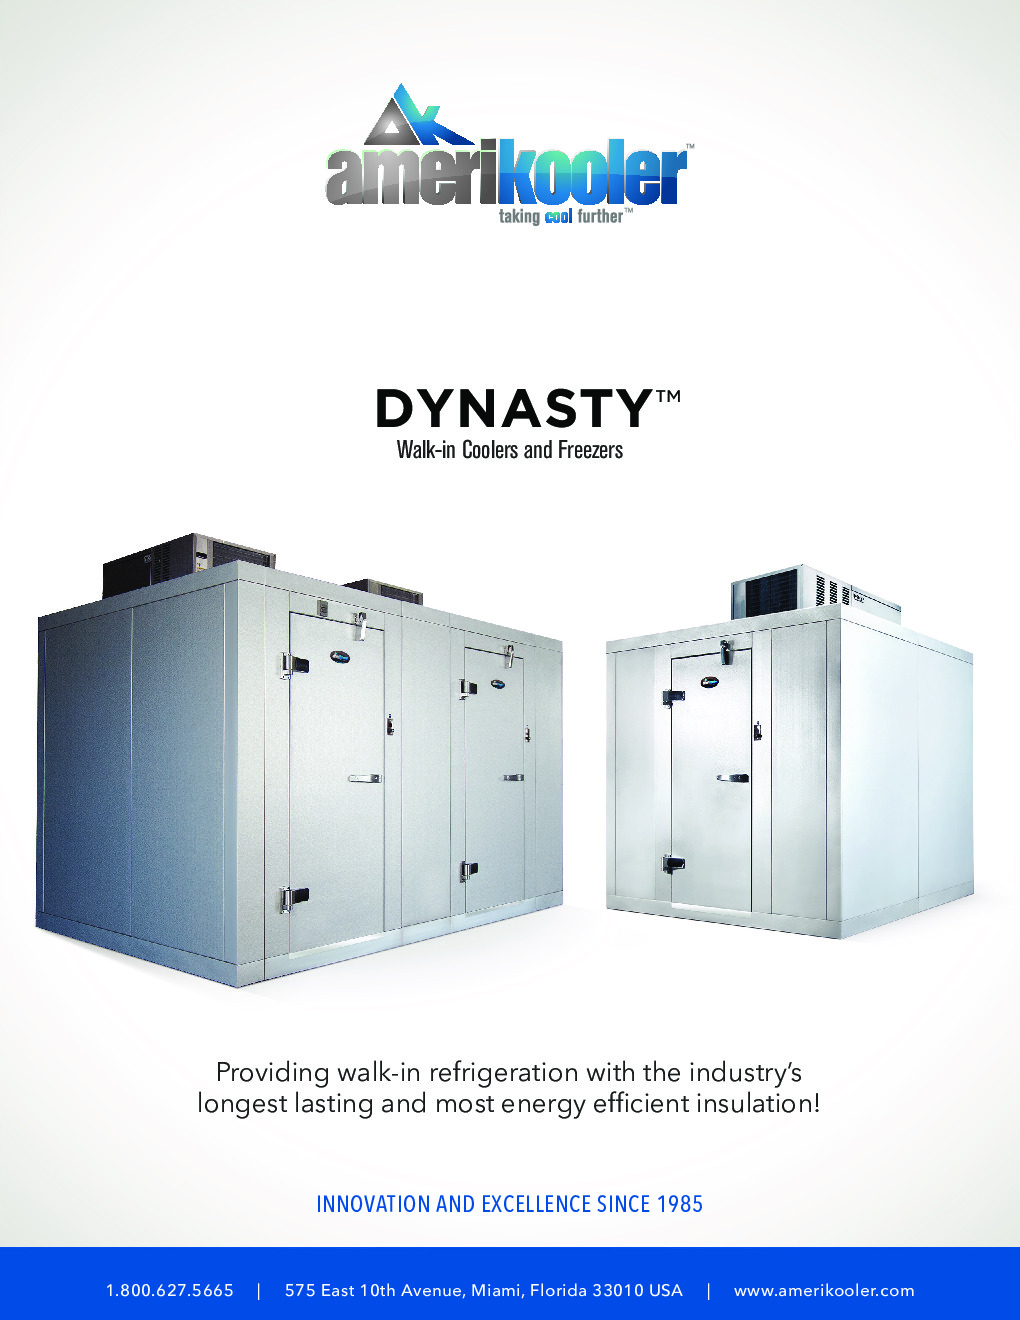 AmeriKooler DW081177F-4/7-RM 8' X 11' Walk-In Cooler, 7' L Cooler with Floor and 4' L Freezer, Remote